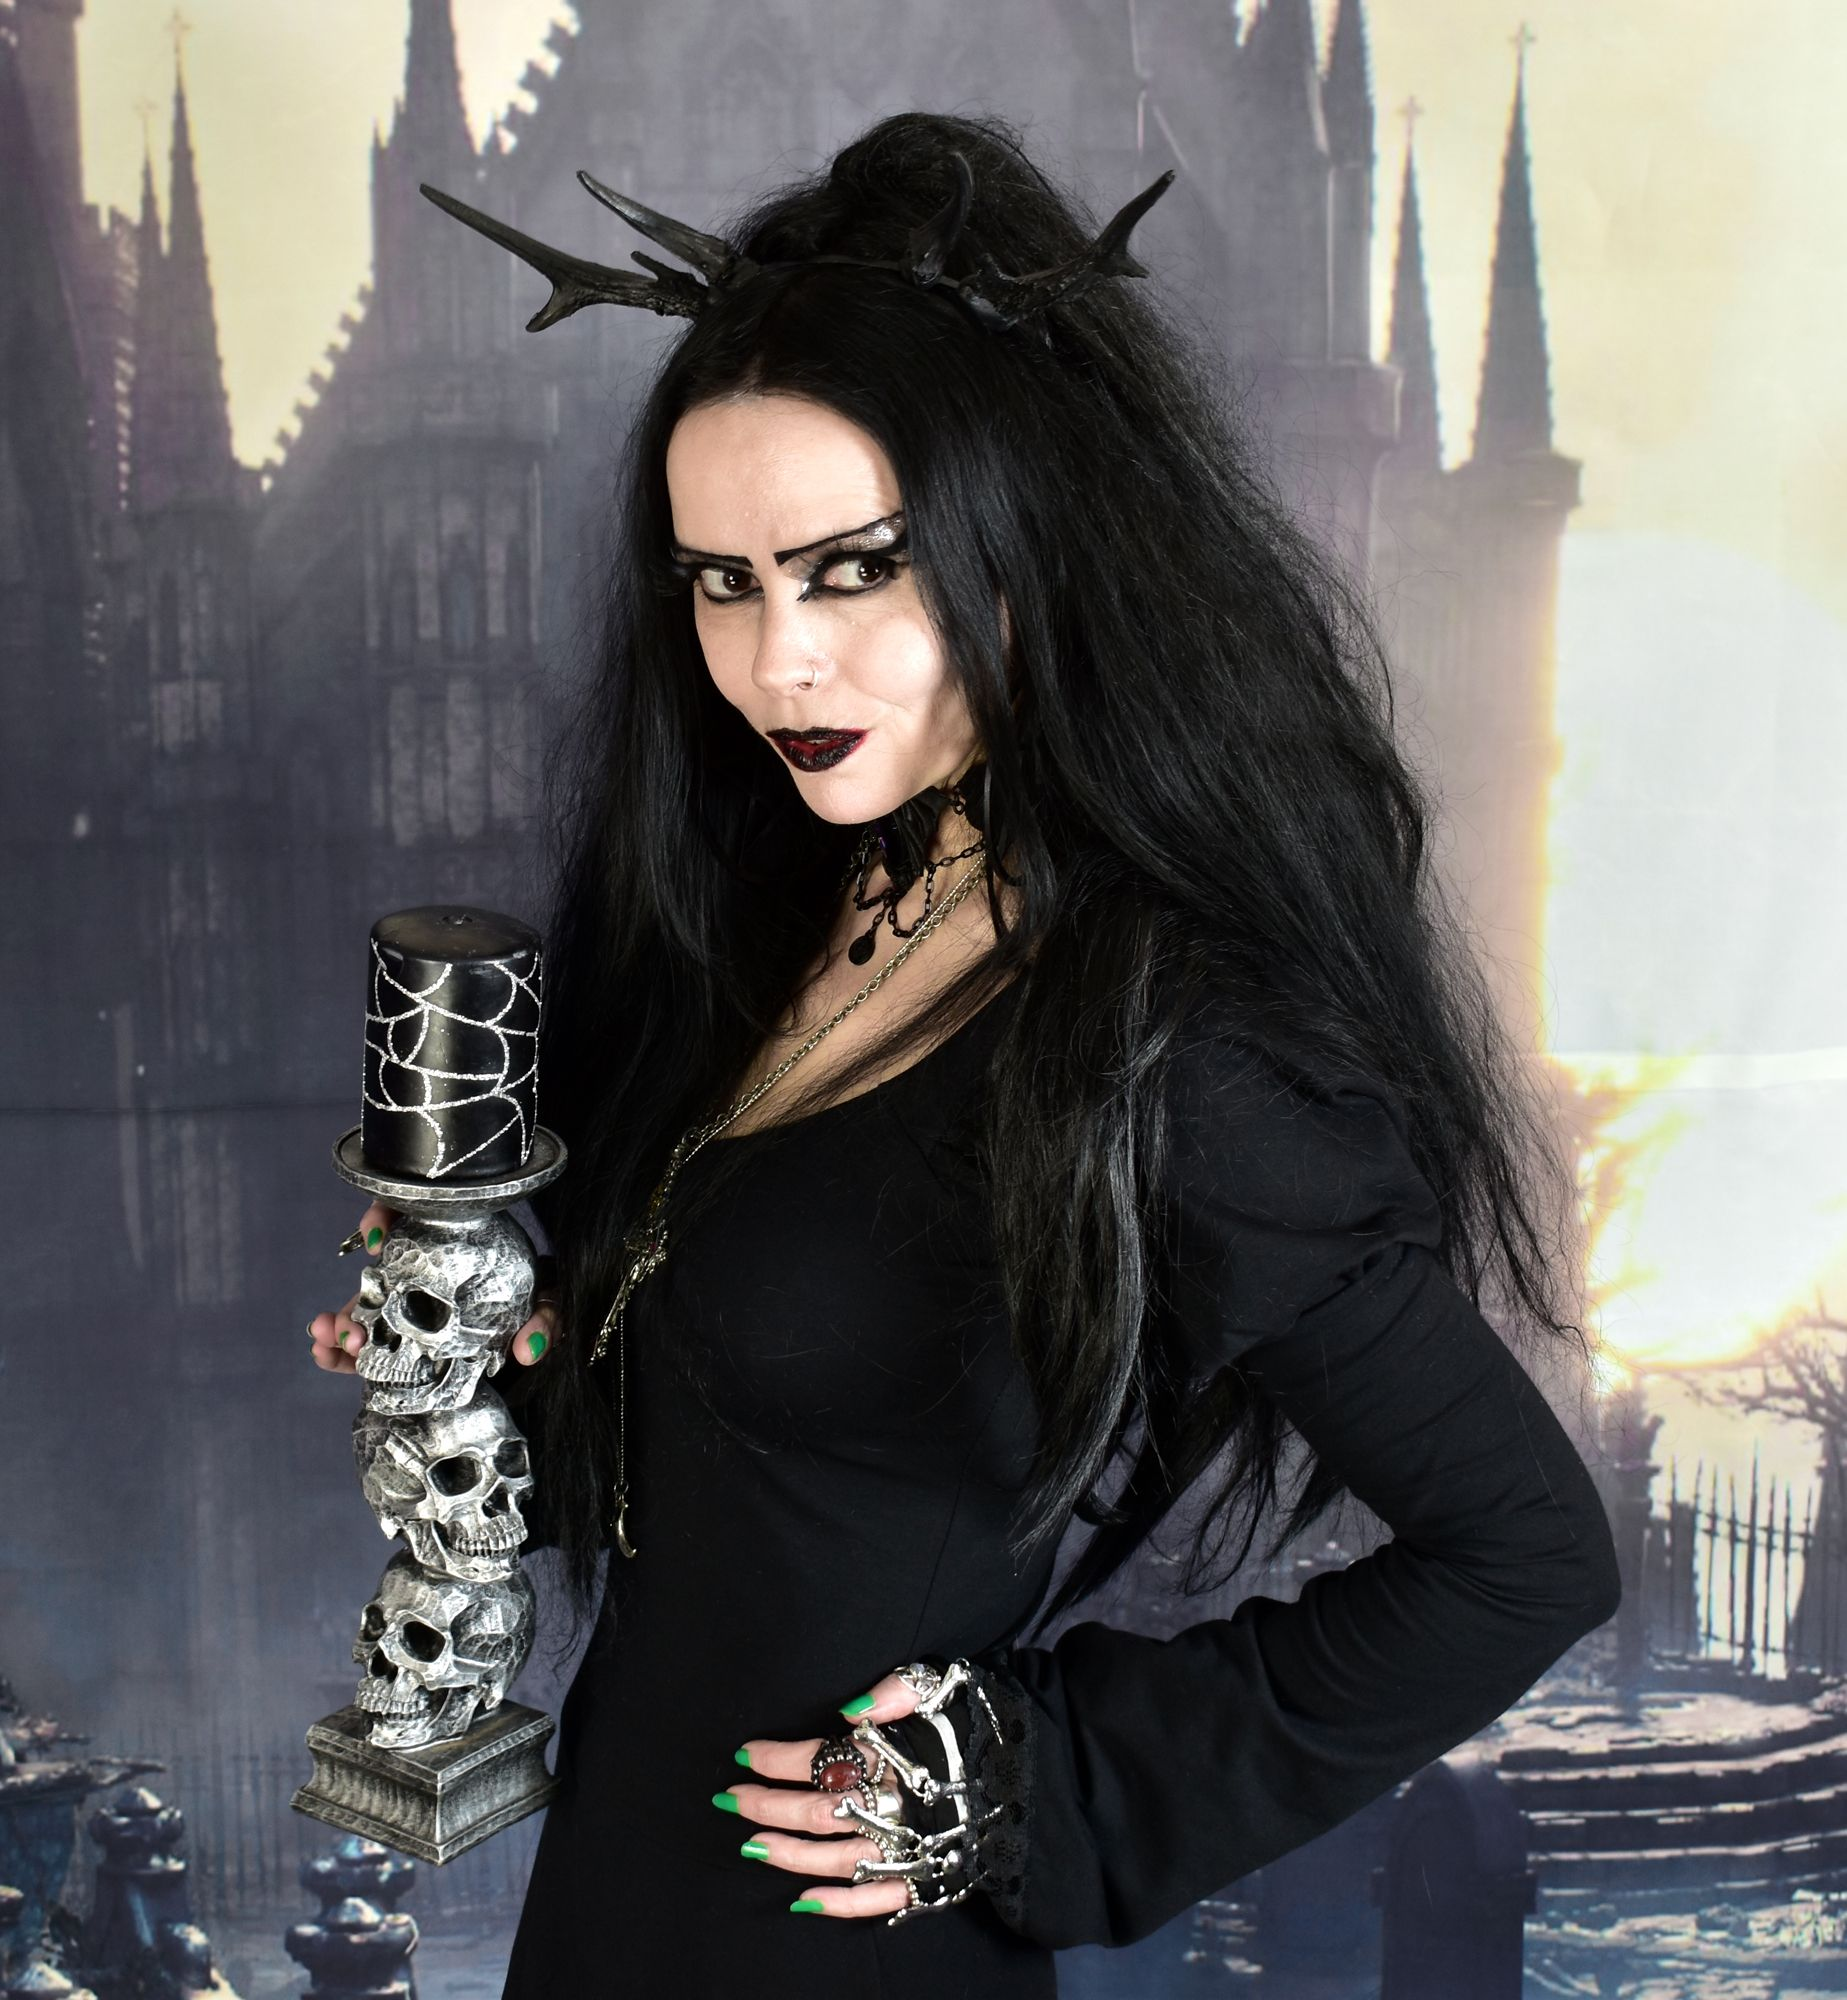 Gofficeia dress coming soon all things goth pinterest